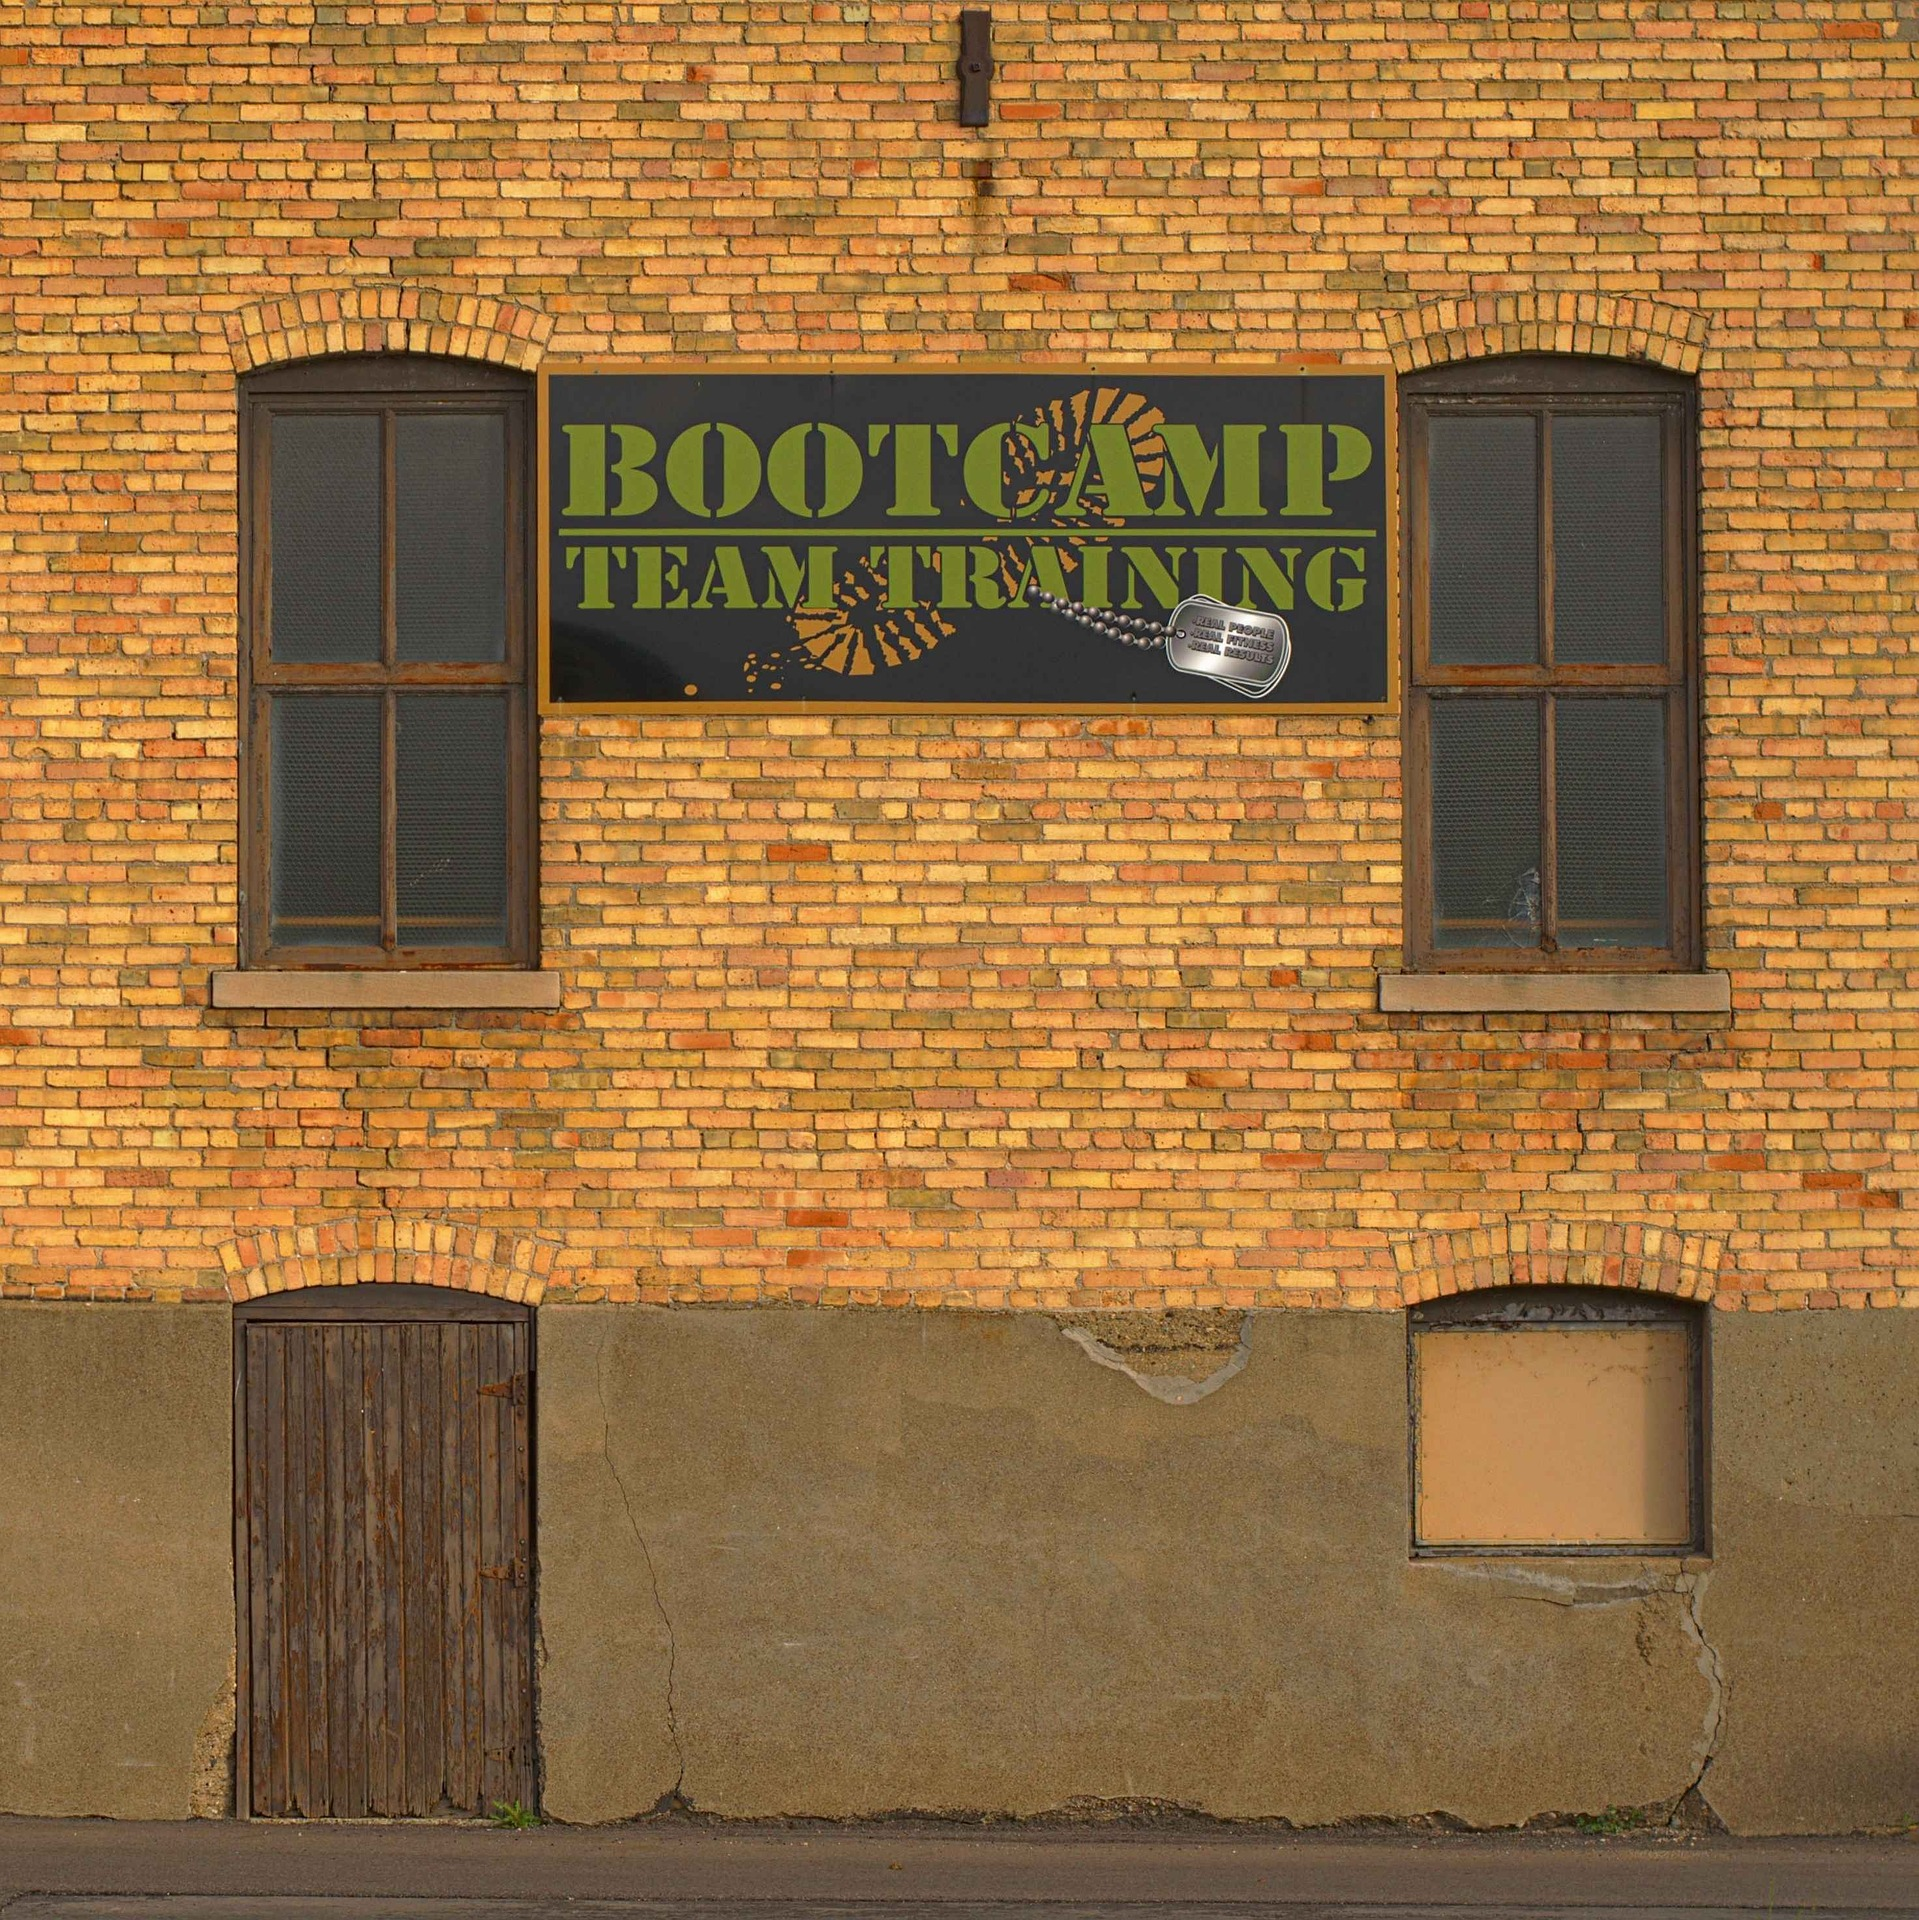 Bootcamp Team Training Workout